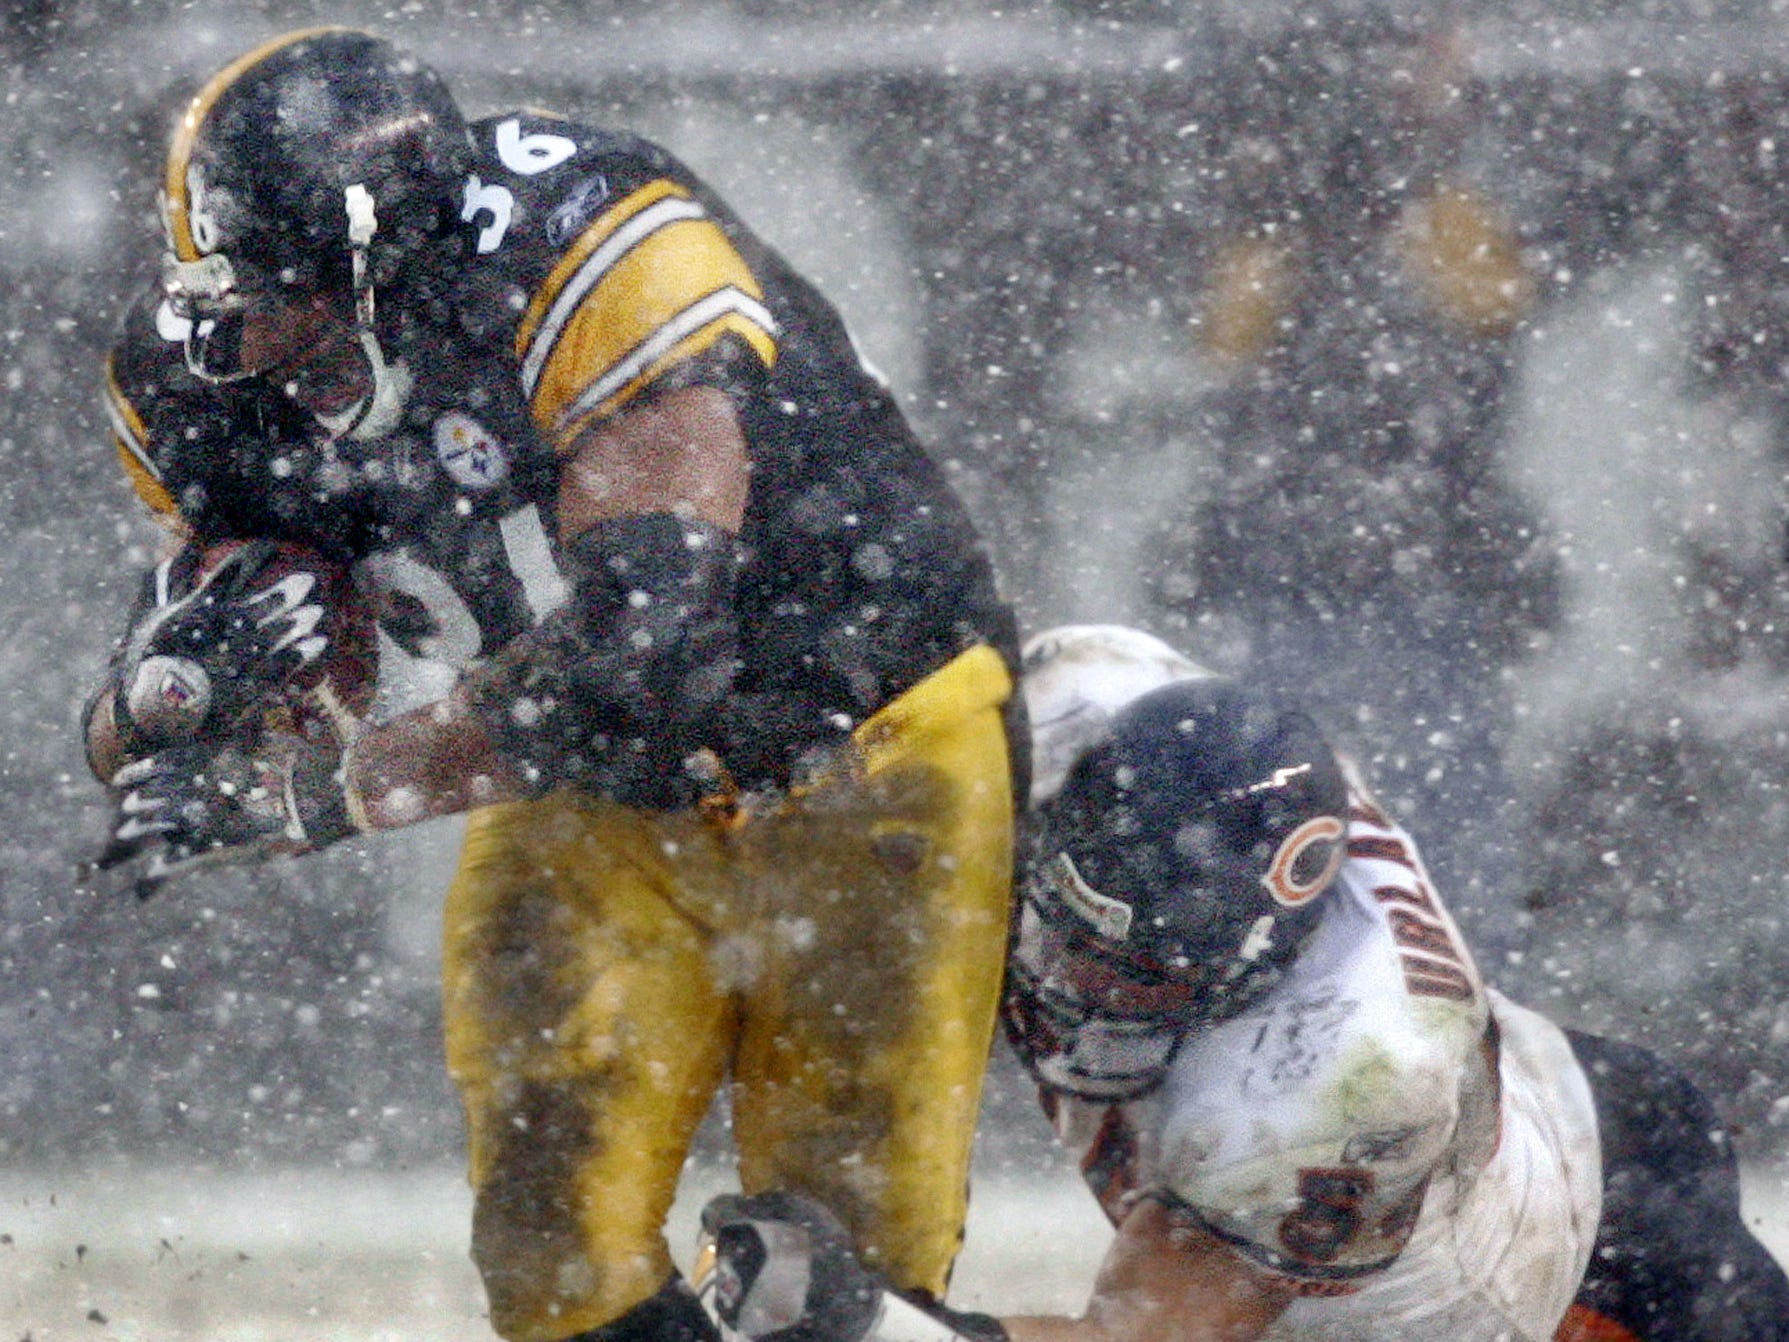 Dec. 11, 2005: Pittsburgh Steelers running back Jerome Bettis gets by Chicago Bears linebacker Brian Urlacher for a first down in the snow at Heinz Field. The Steelers won the game, 21-9.